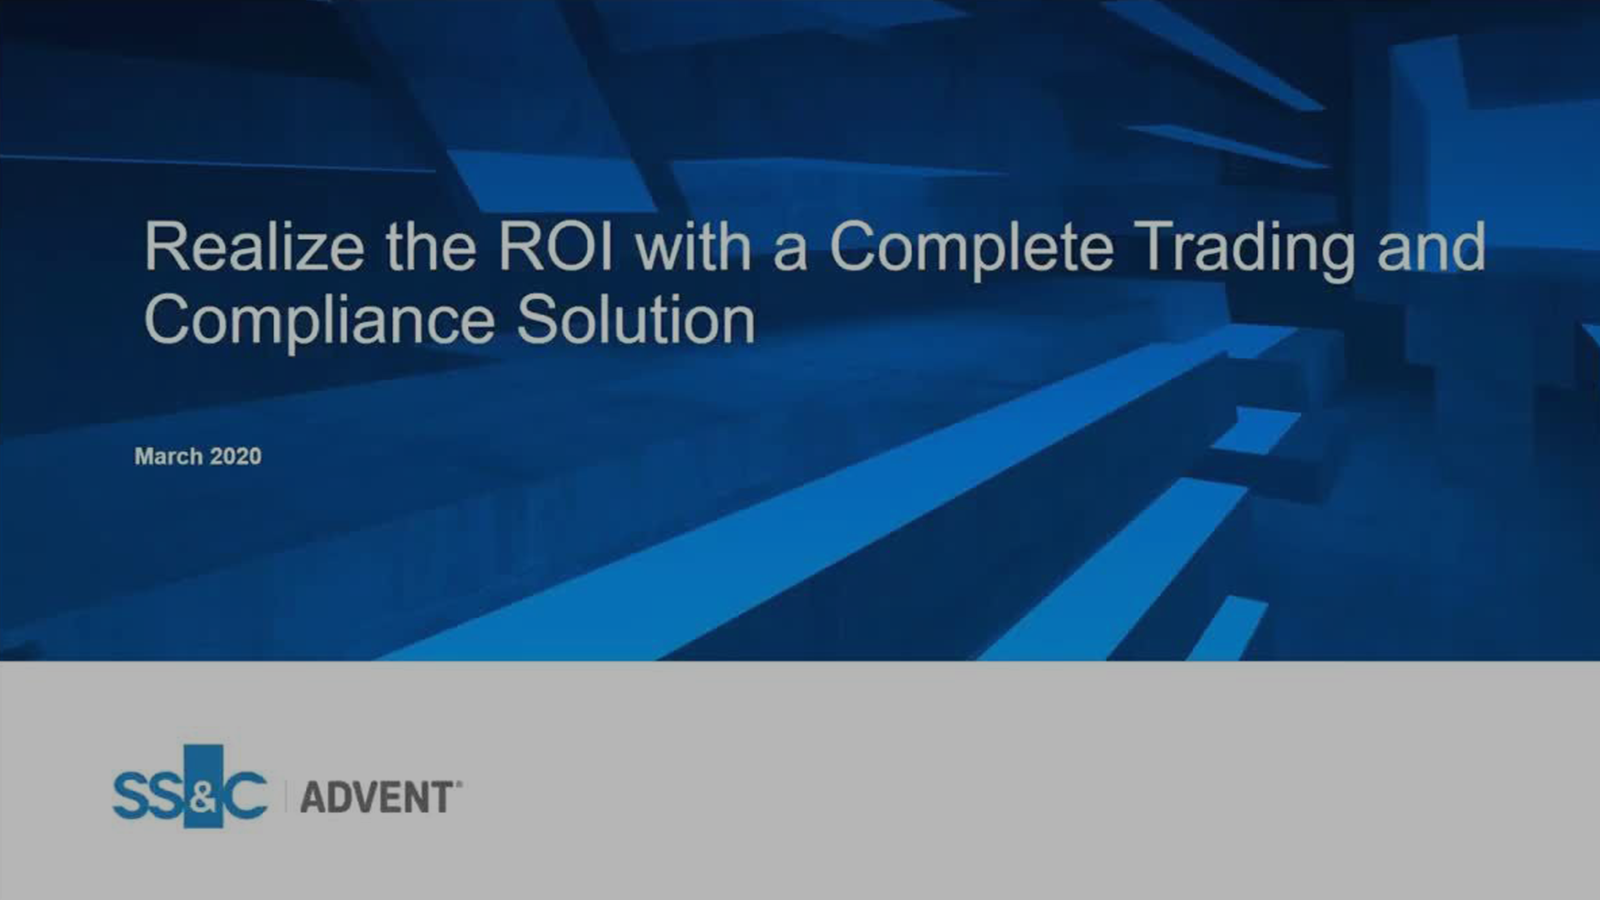 poster image for A Complete Trading and Compliance Solution